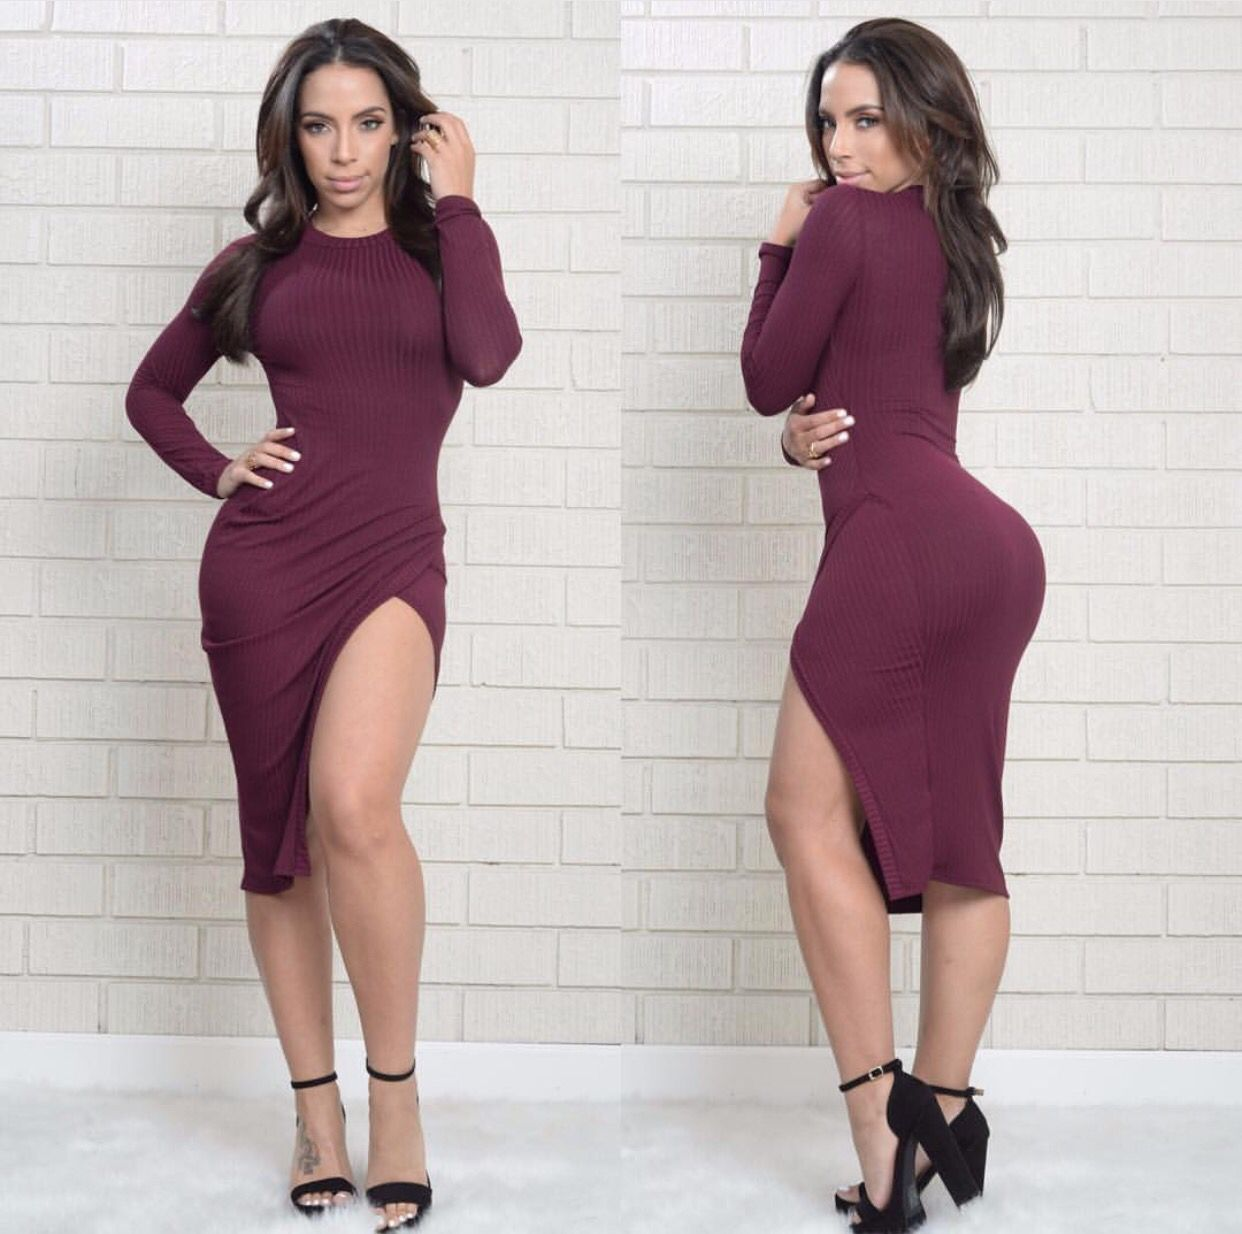 I want this dress asap.